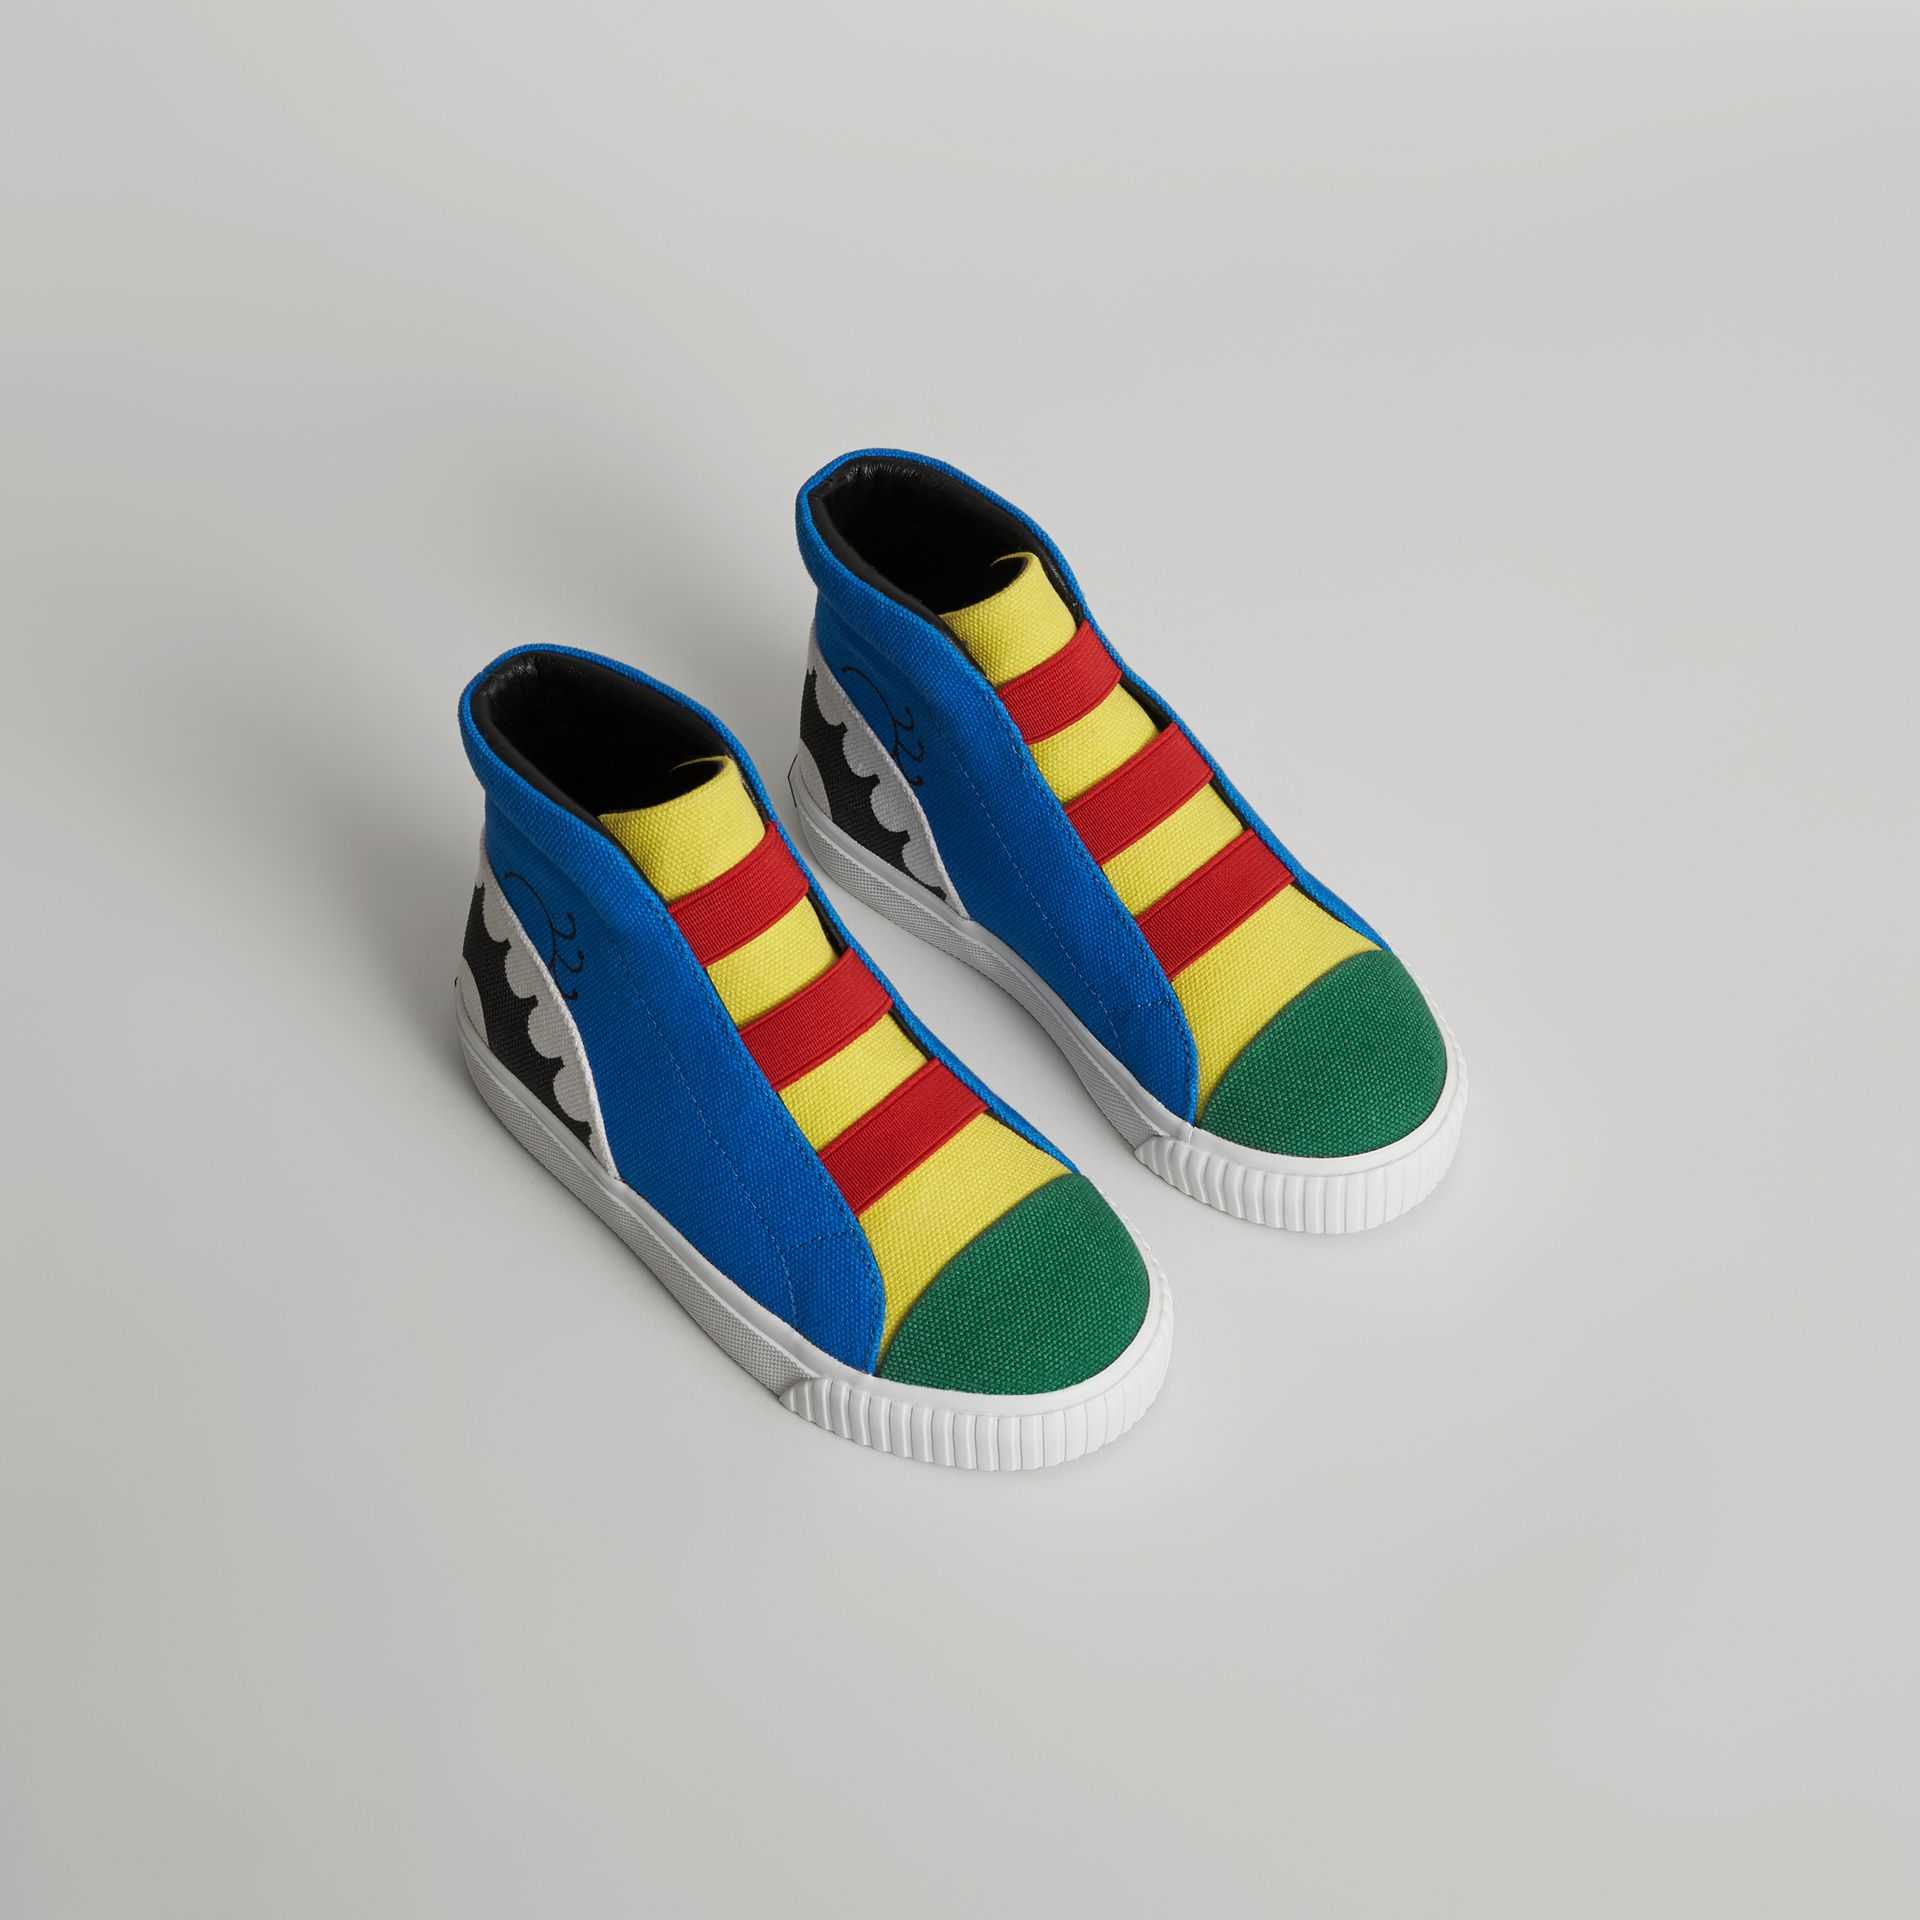 Sneakers montantes avec motif monstre graphique (Bleu Ciel Vif) | Burberry - photo de la galerie 0